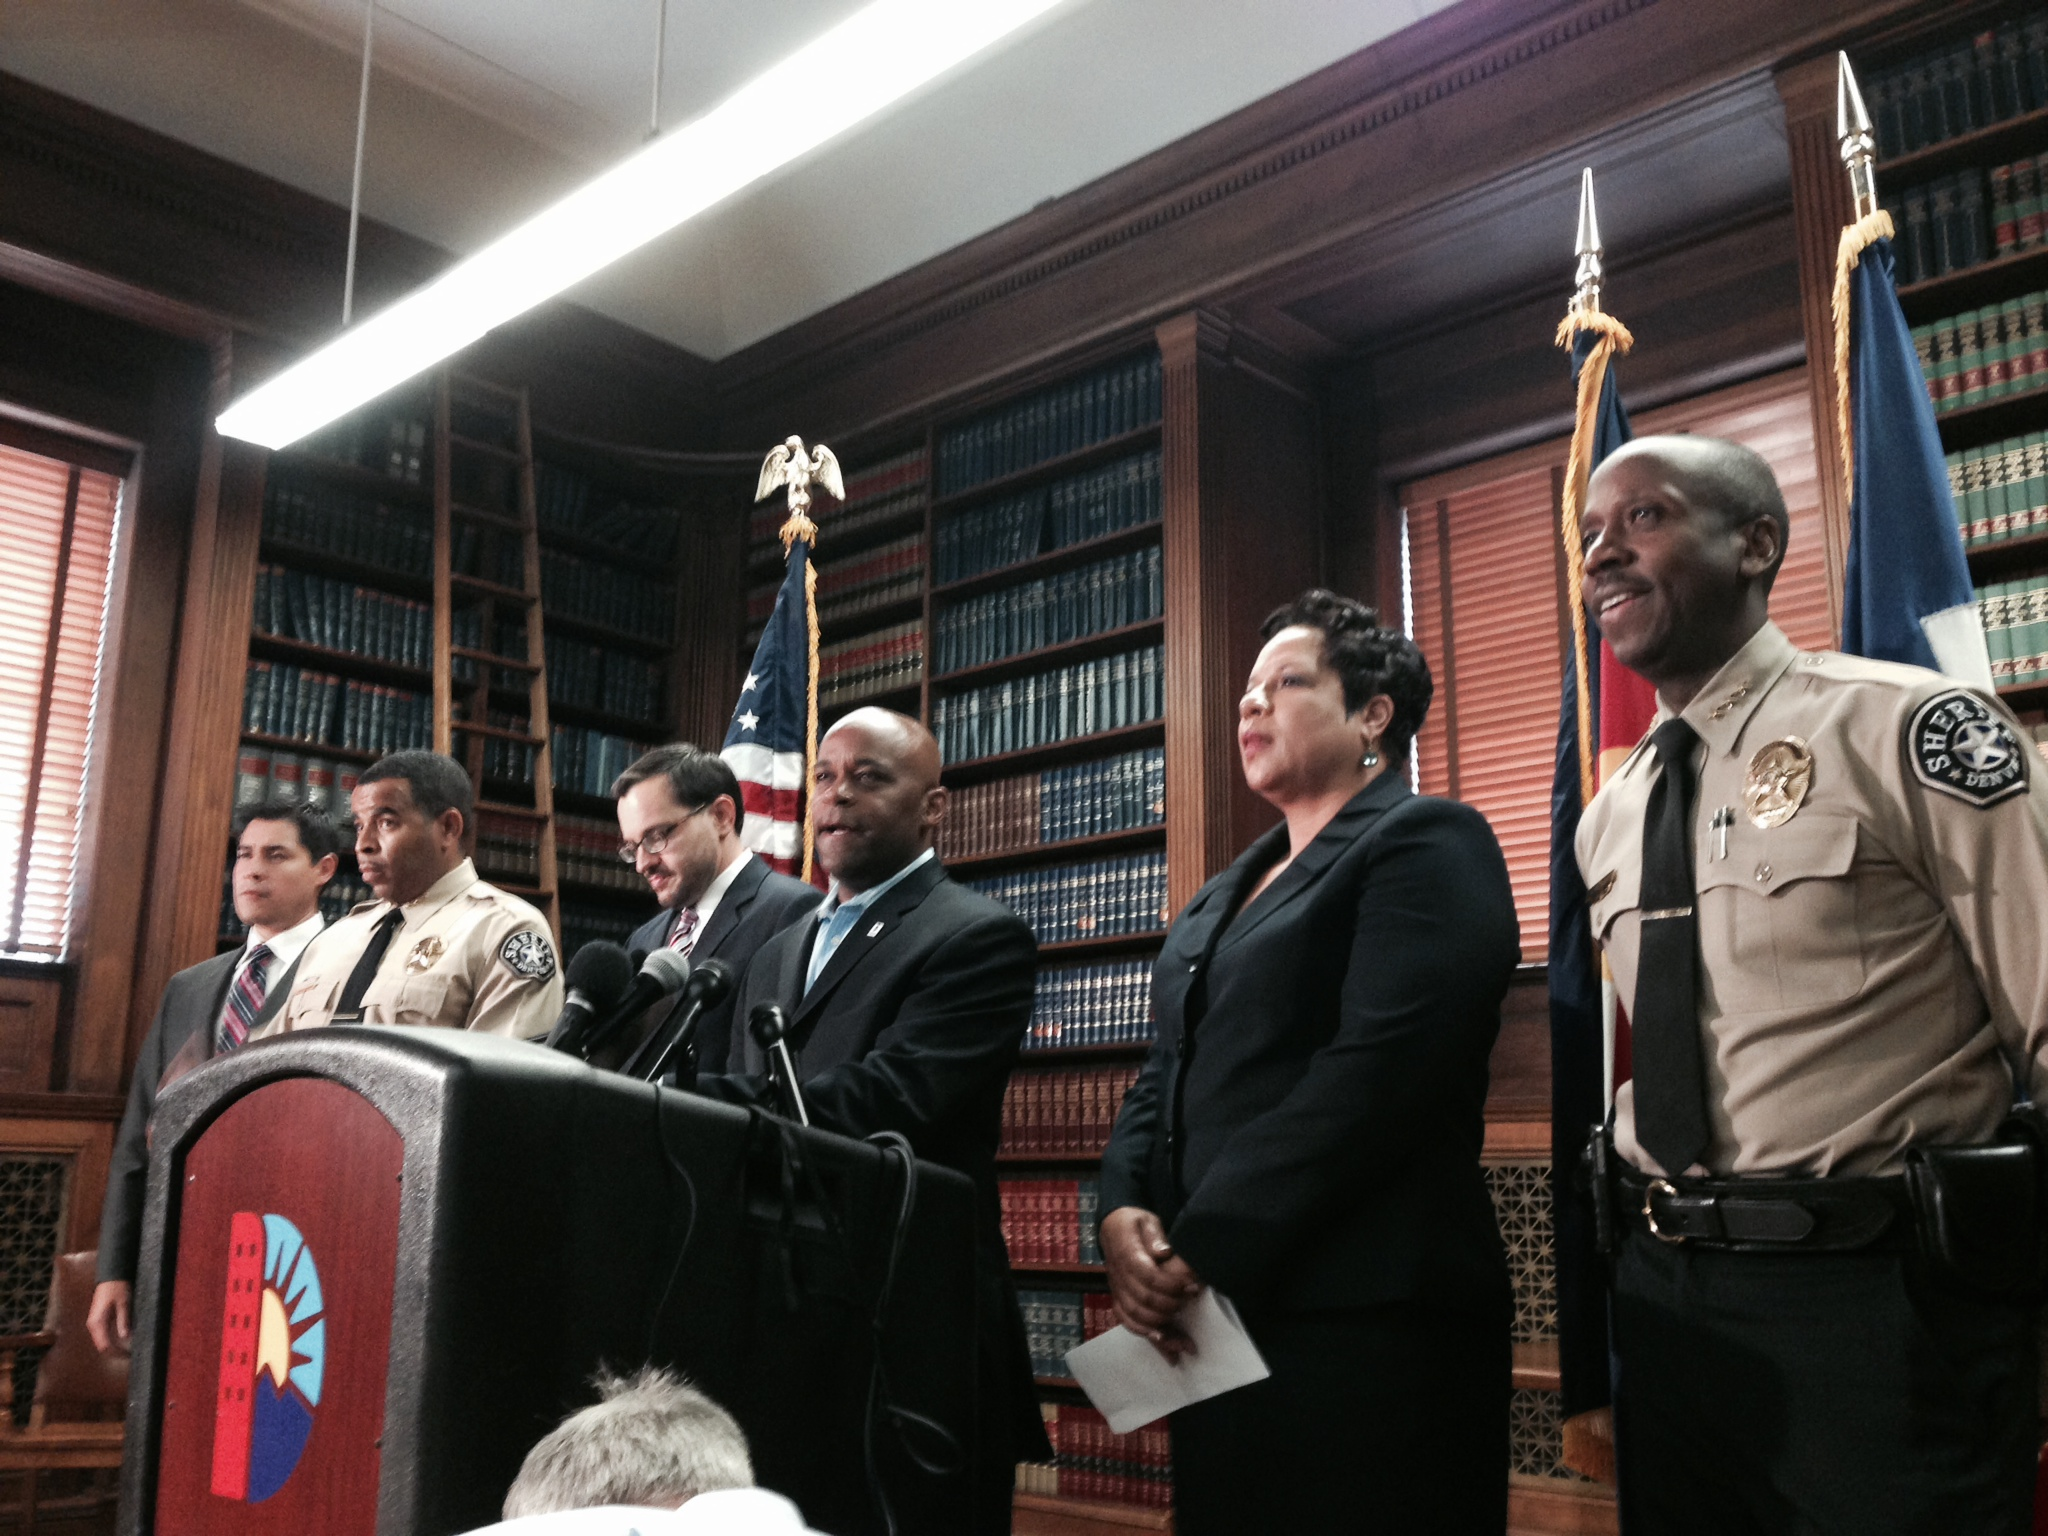 Photo: Denver mayor announces sheriff's resignation